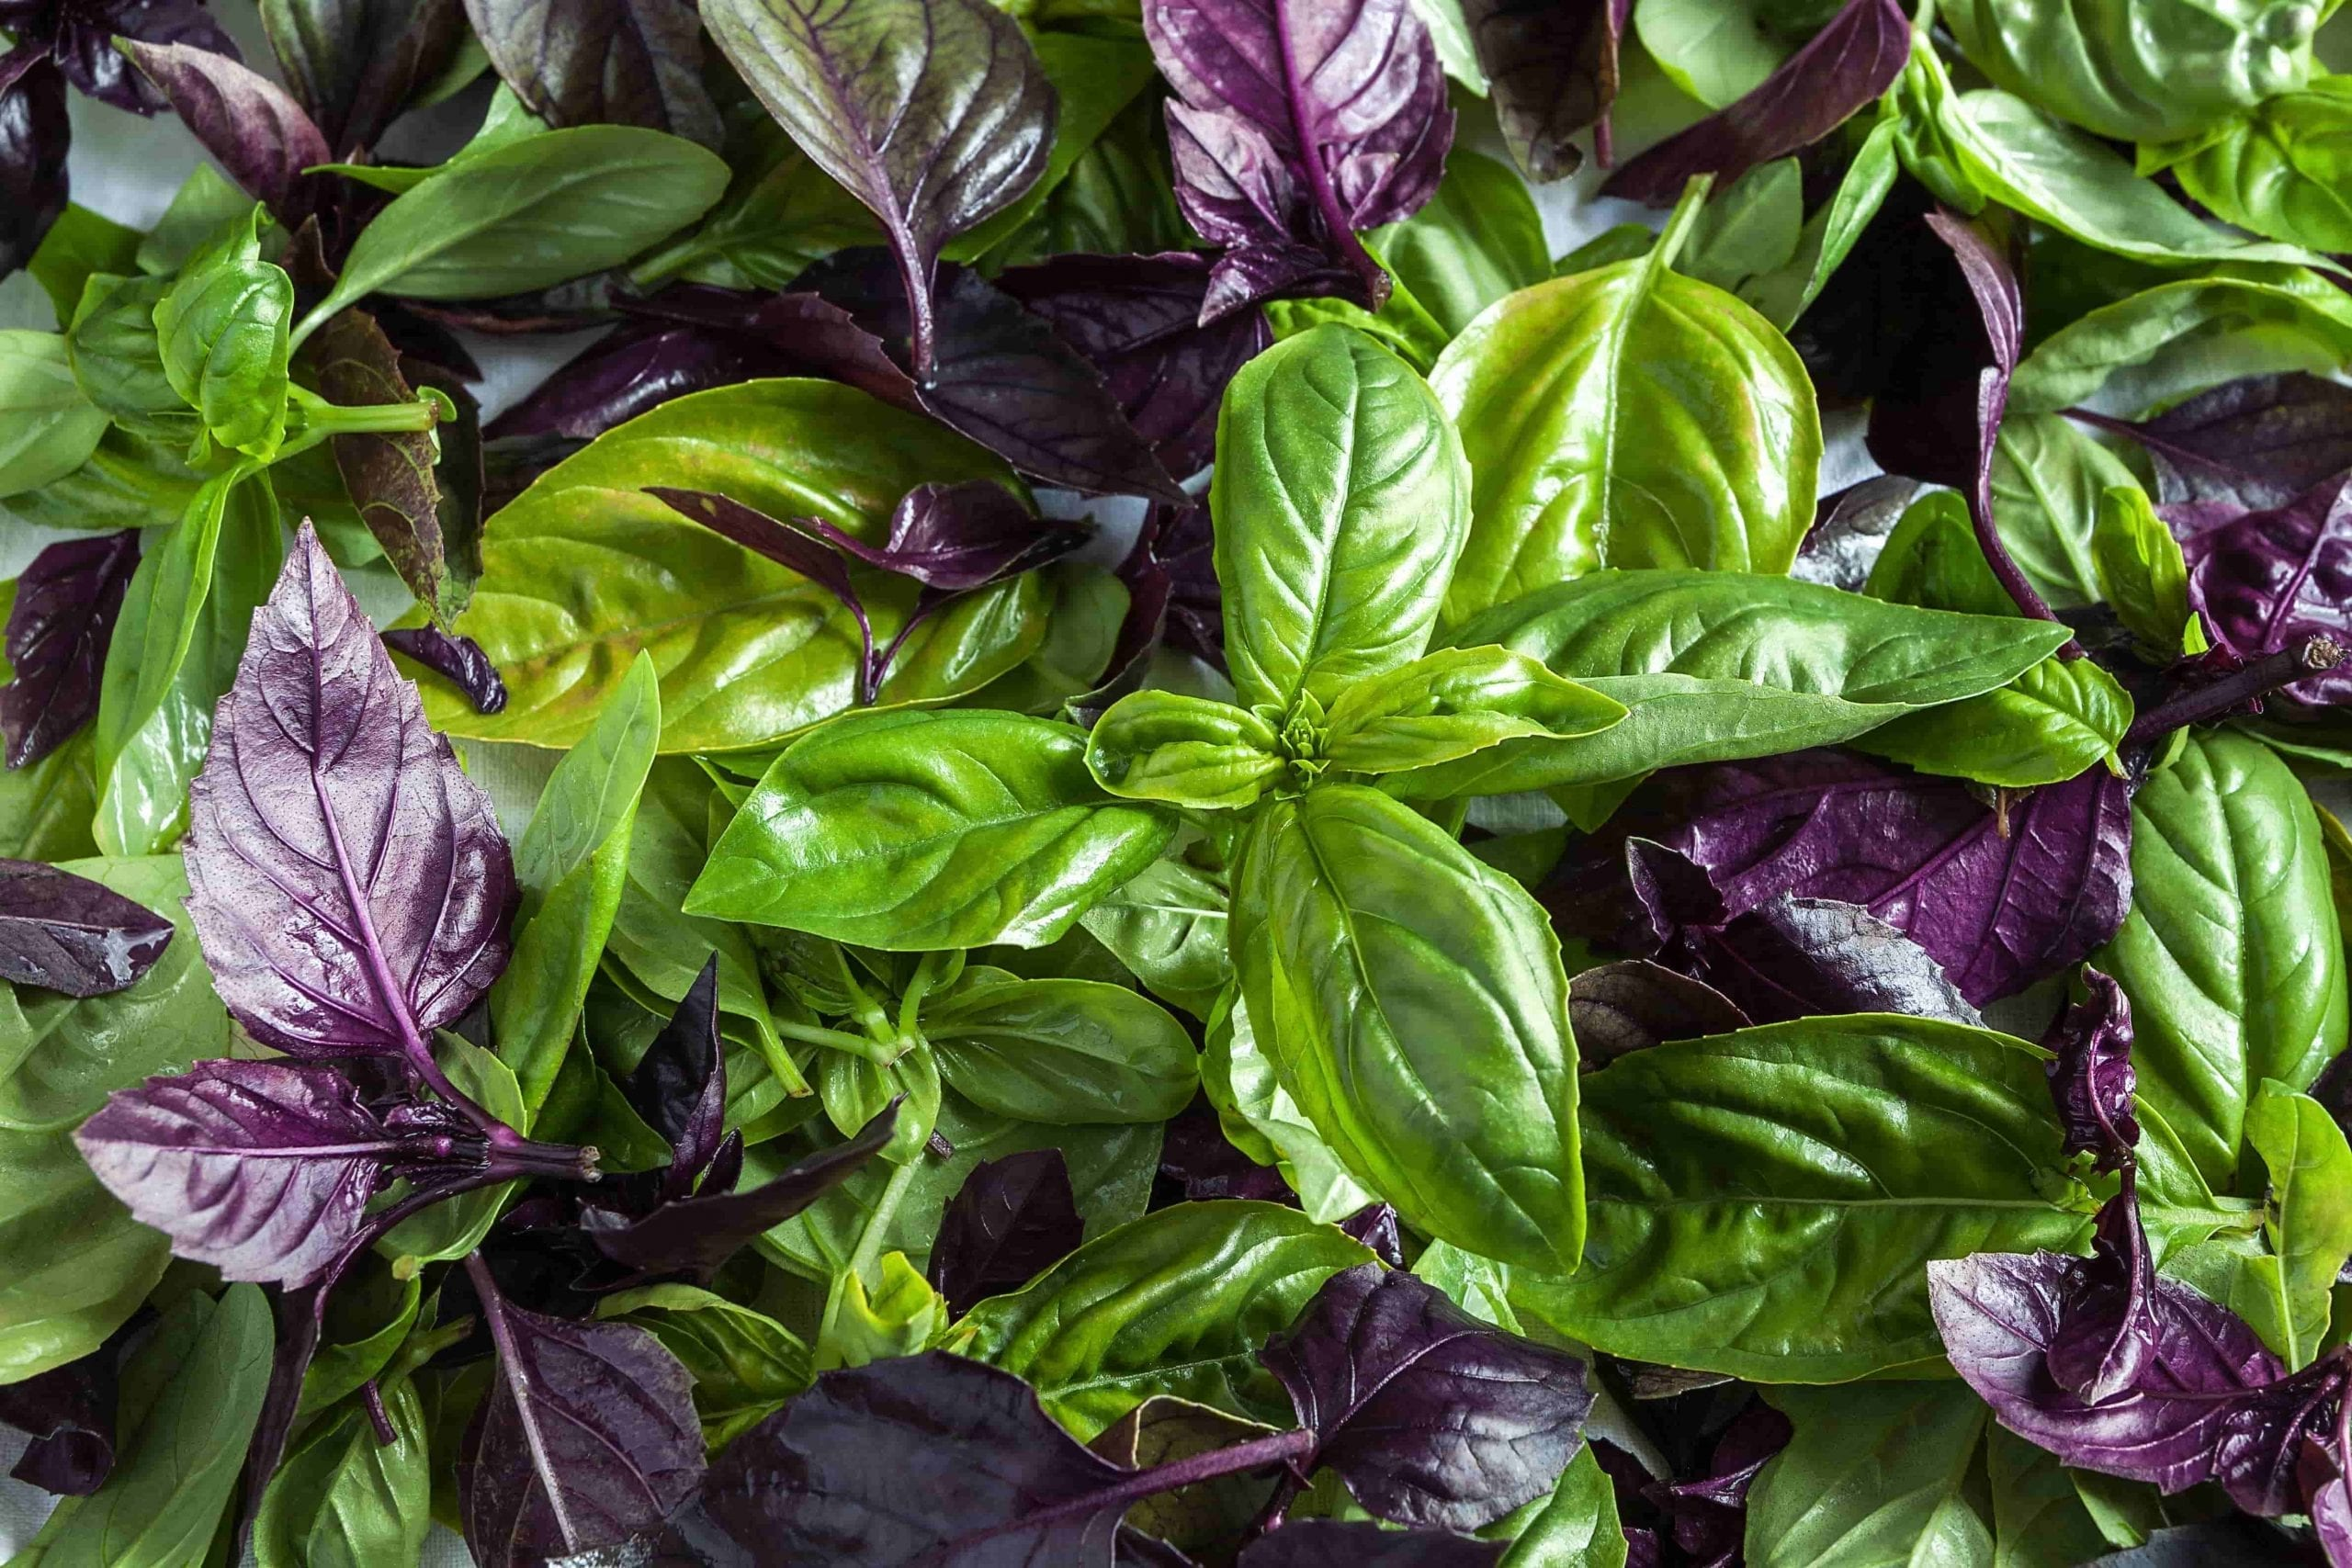 garden herbs green and purple basil leaf